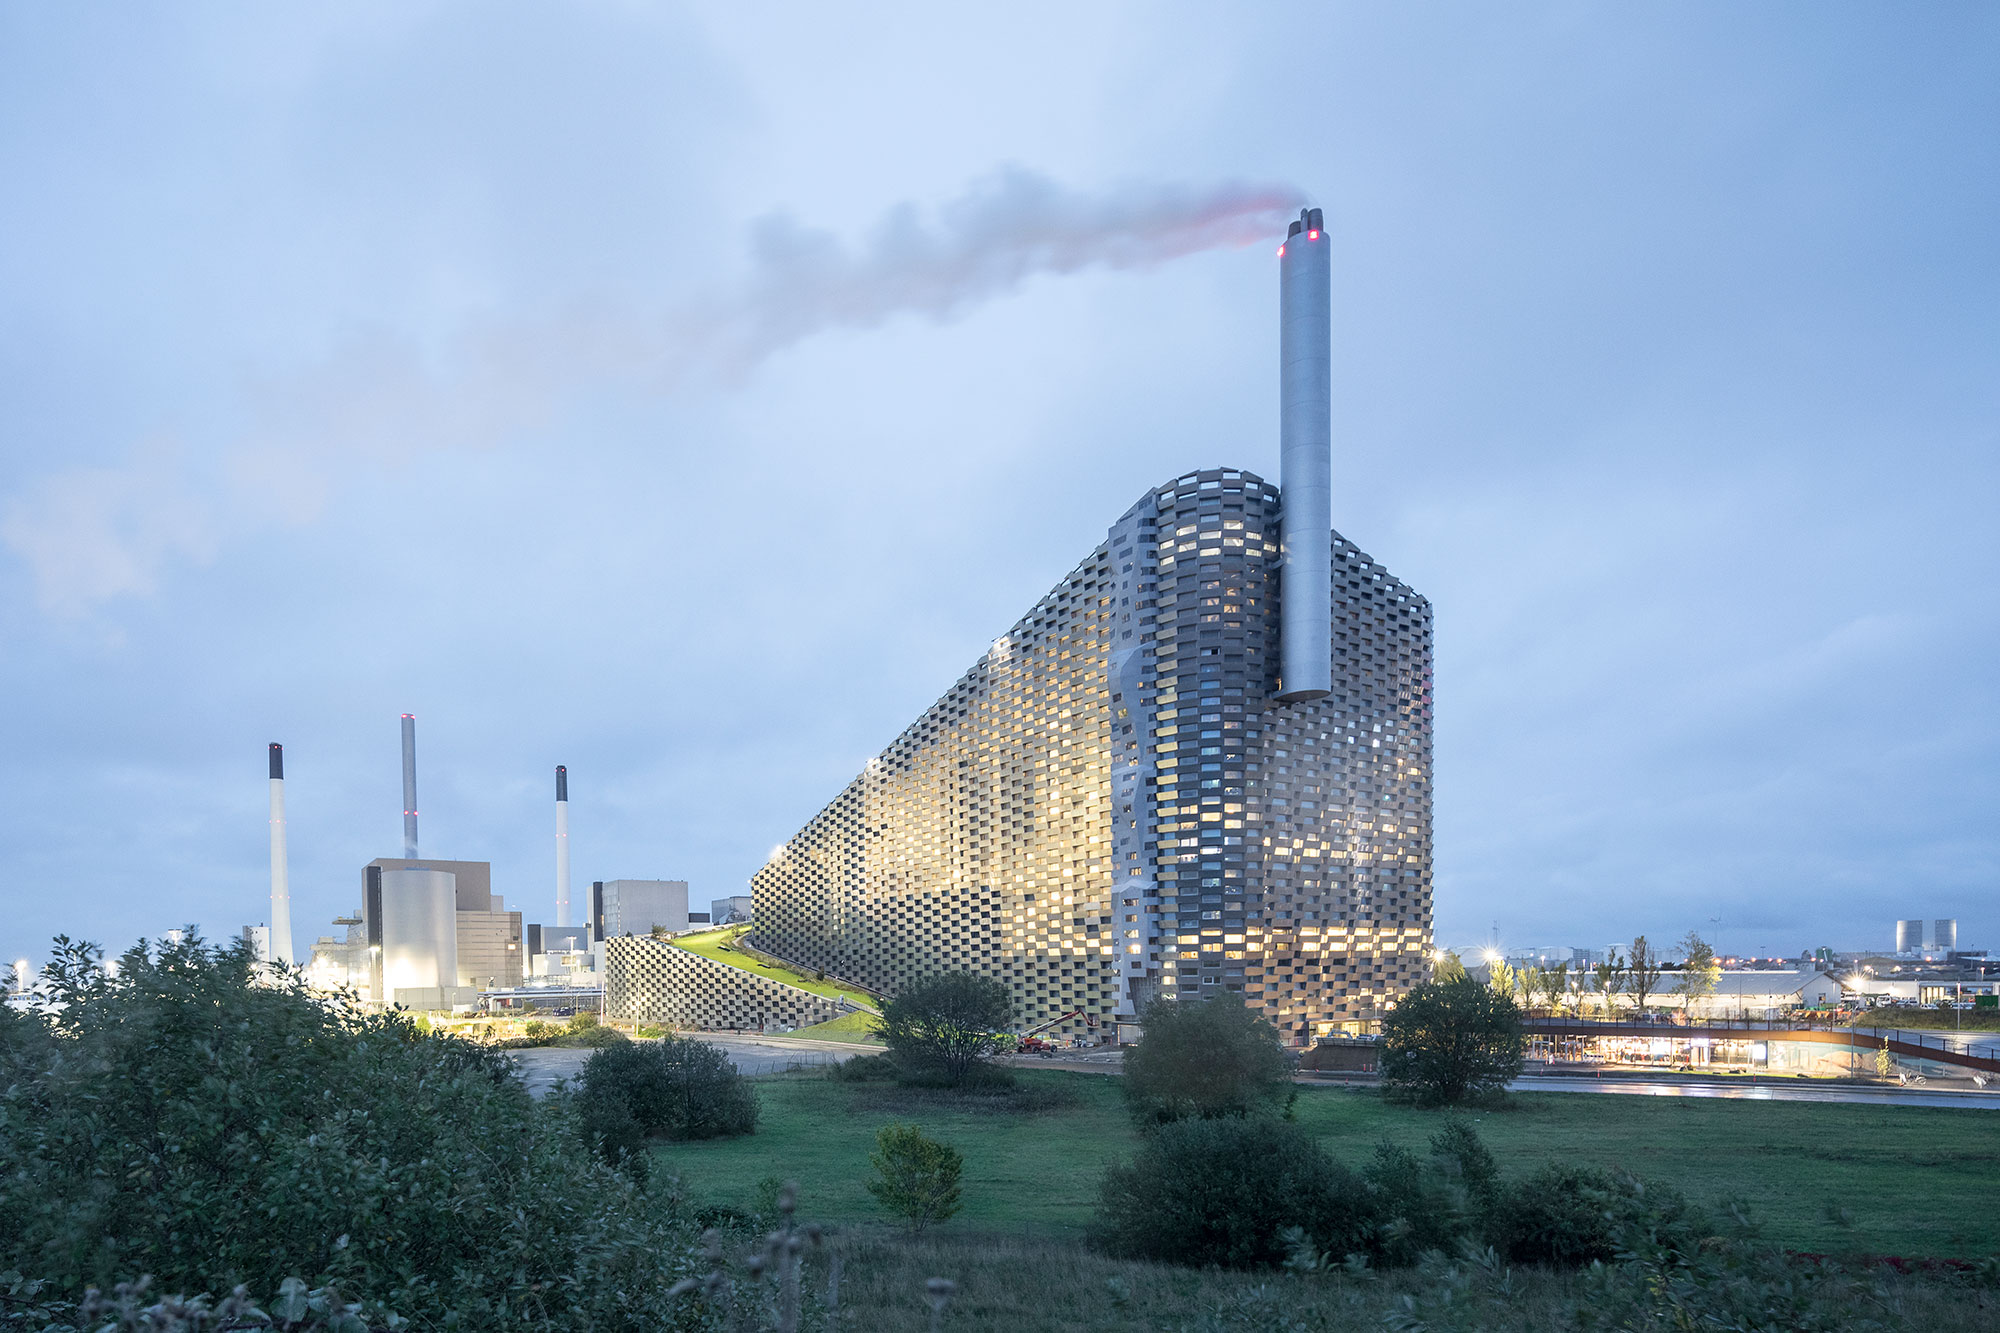 CopenHill Waste-to-Energy Plant & Recreation Center / BIG